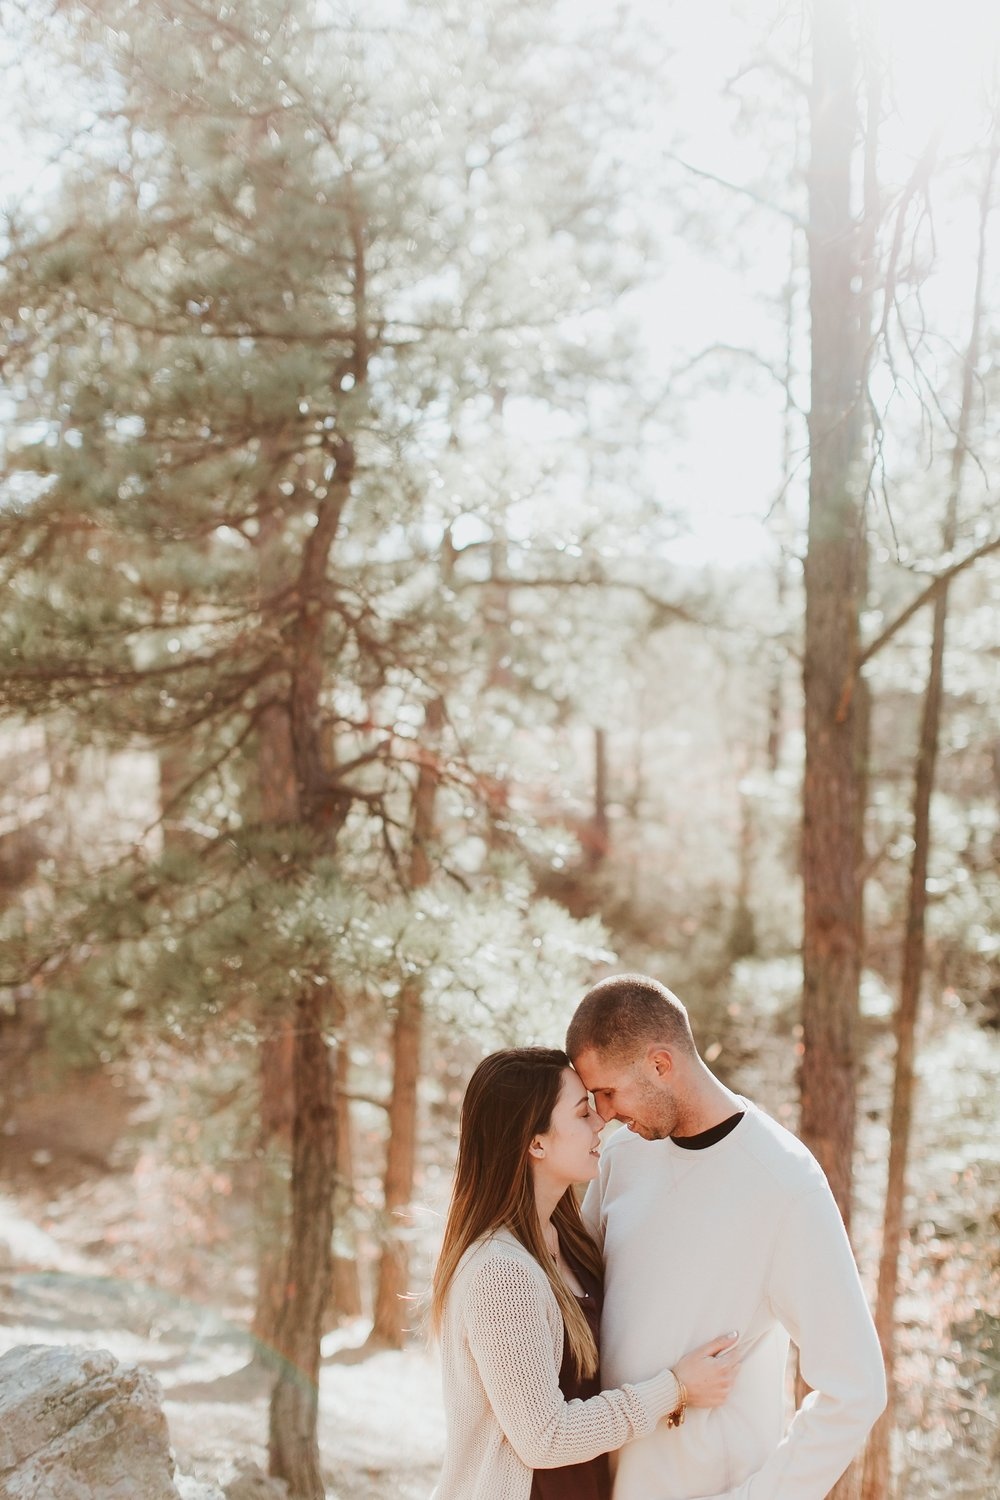 Alicia+lucia+photography+-+albuquerque+wedding+photographer+-+santa+fe+wedding+photography+-+new+mexico+wedding+photographer+-+albuquerque+winter+engagement+session_0023.jpg